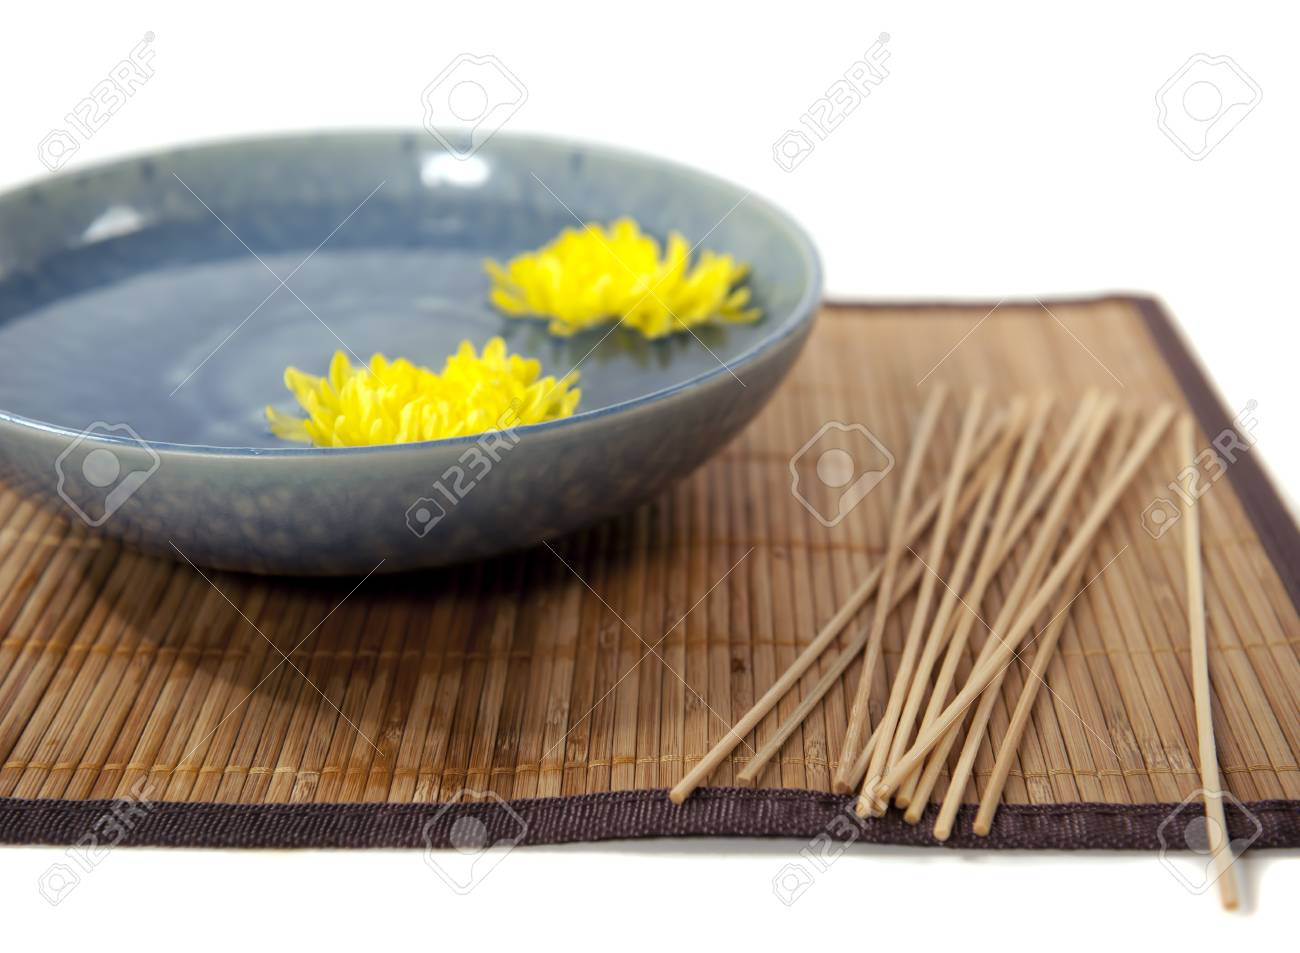 chrysanthumum flowers in a blue bowl - 9651330